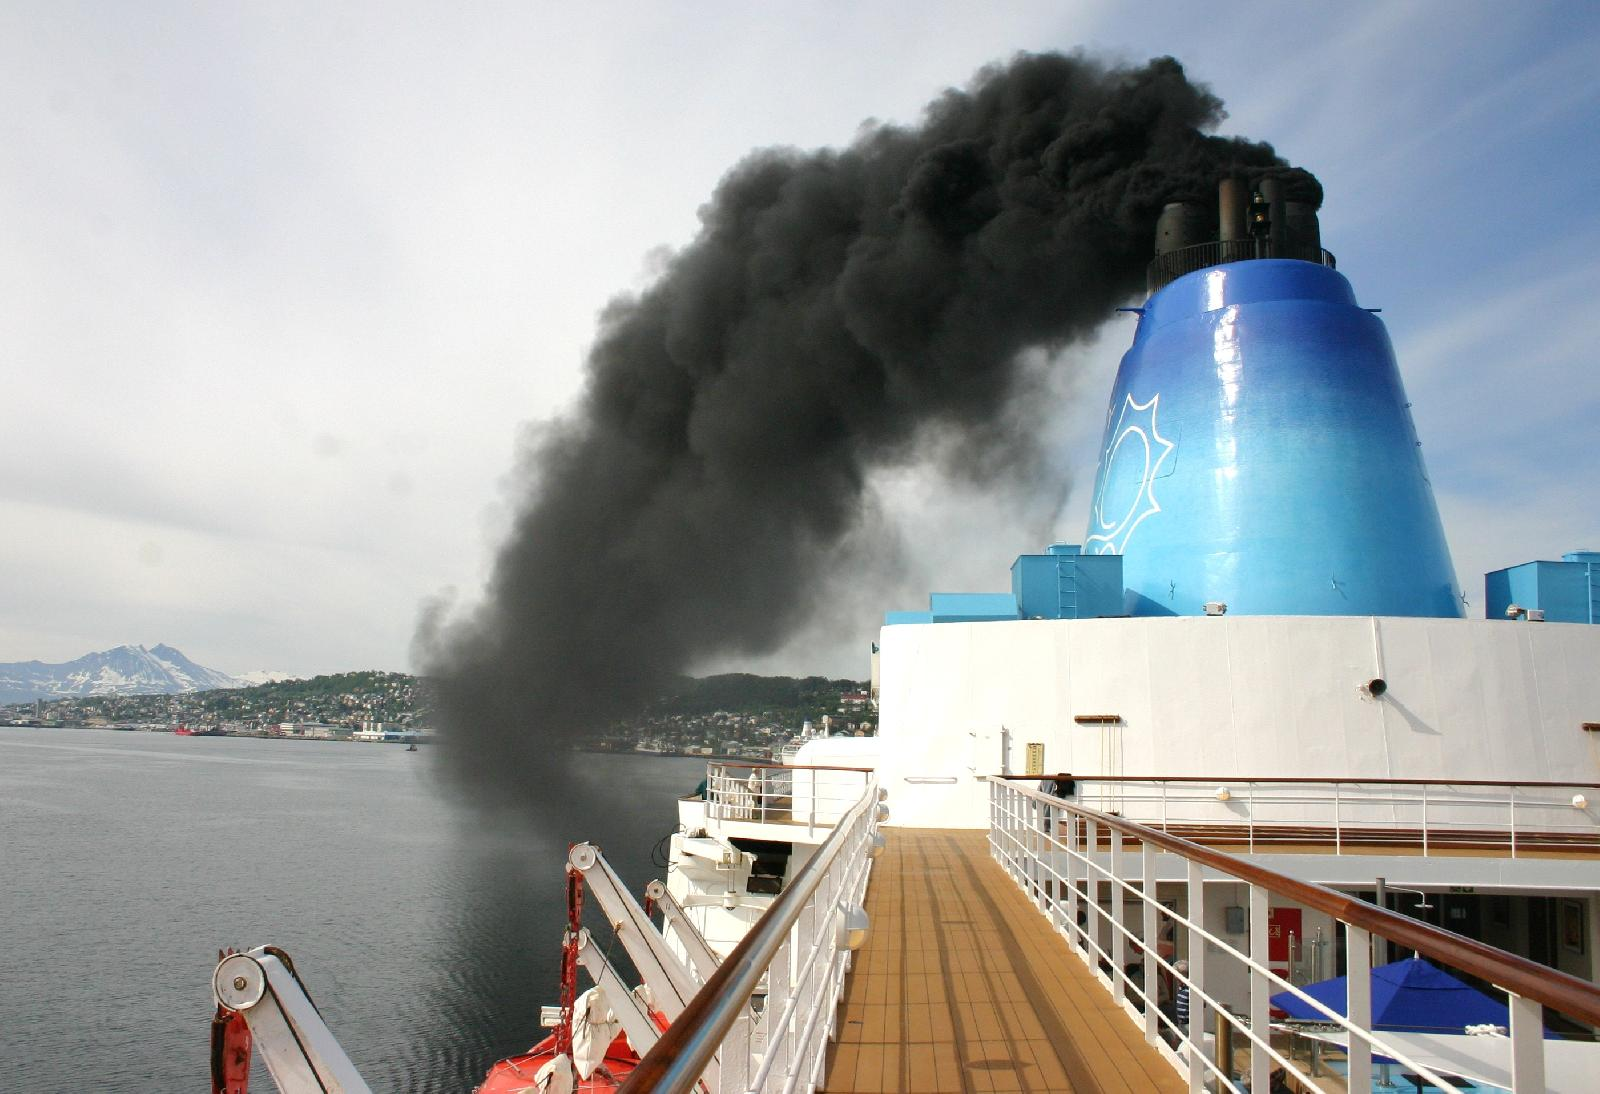 Low-sulphur fuel laws may divert cargo away from northern Europe